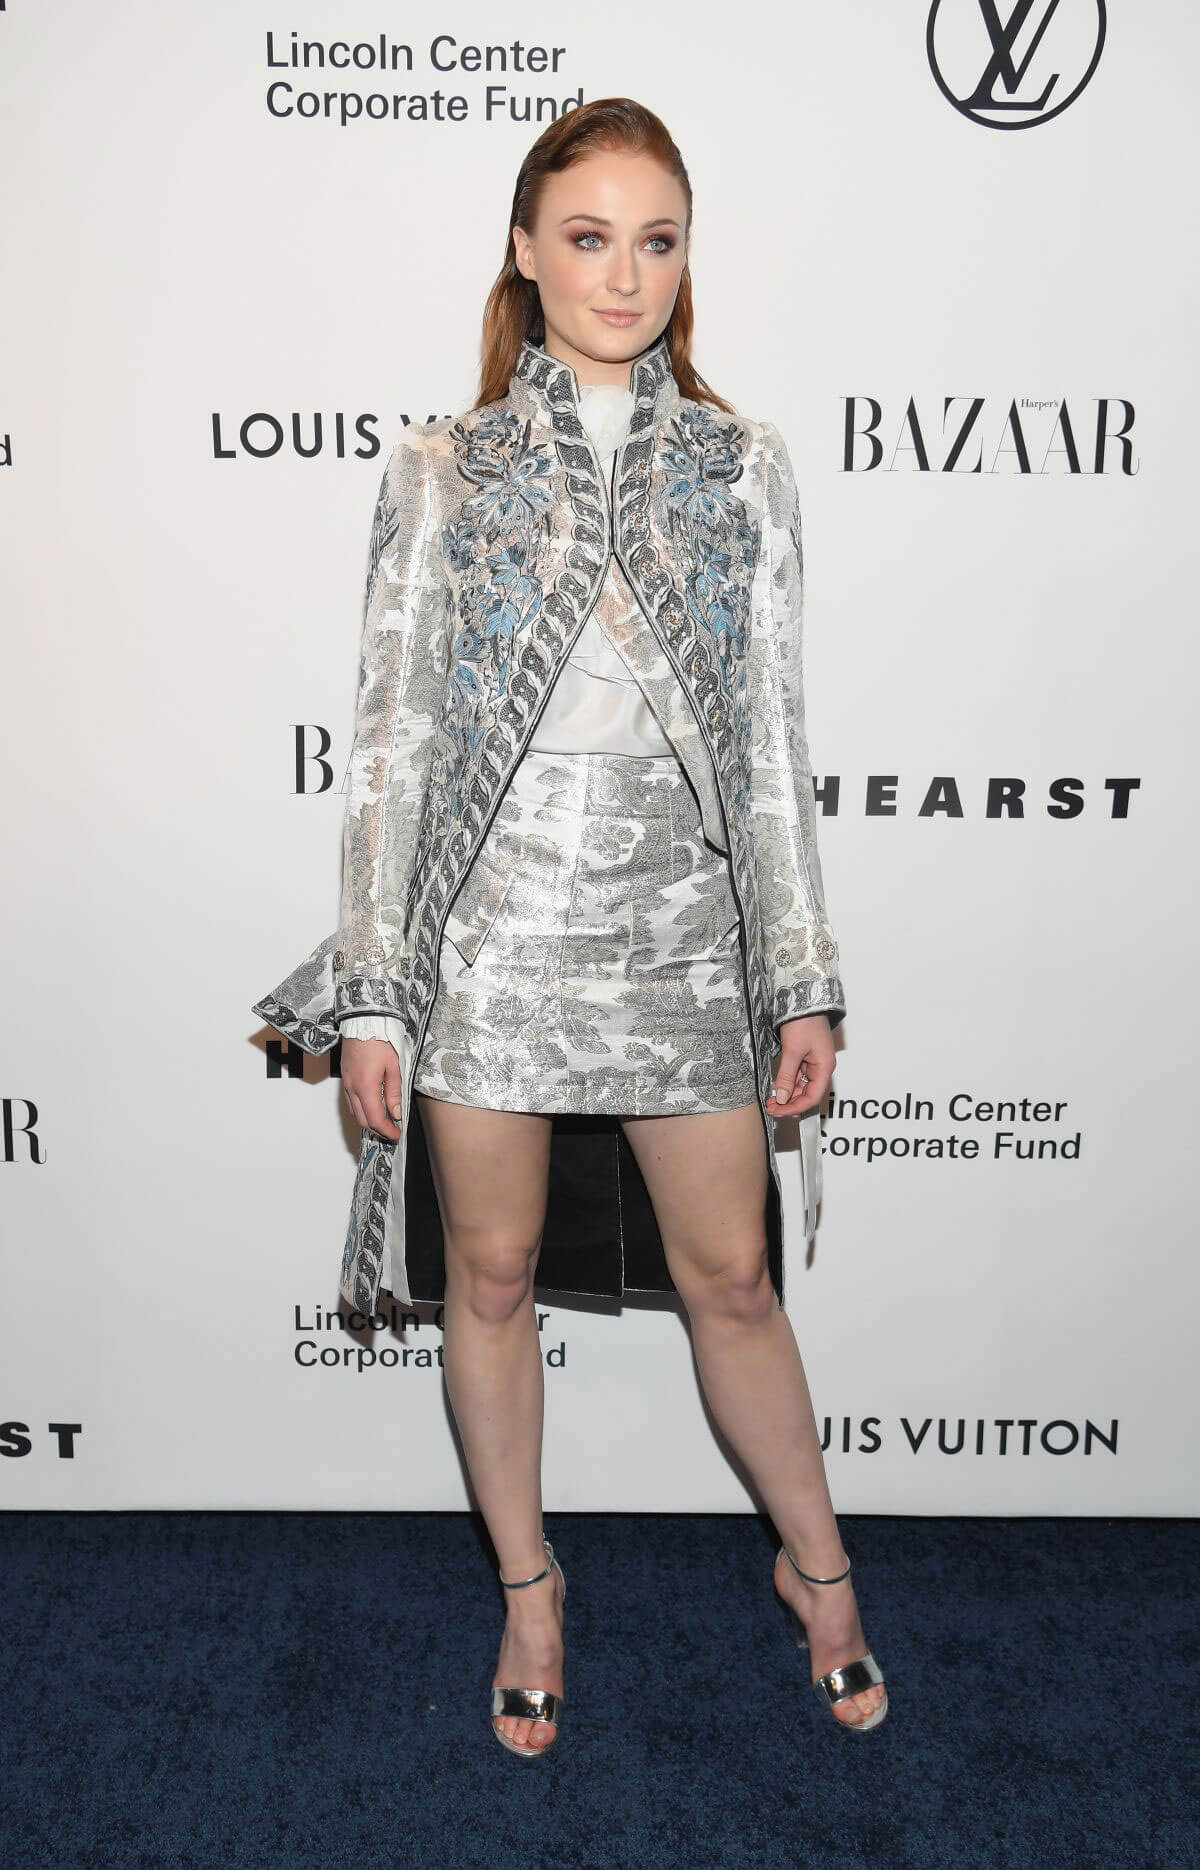 Sophie Turner Stills at An Evening Honoring Louis Vuitton and Nicolas Ghesquiere